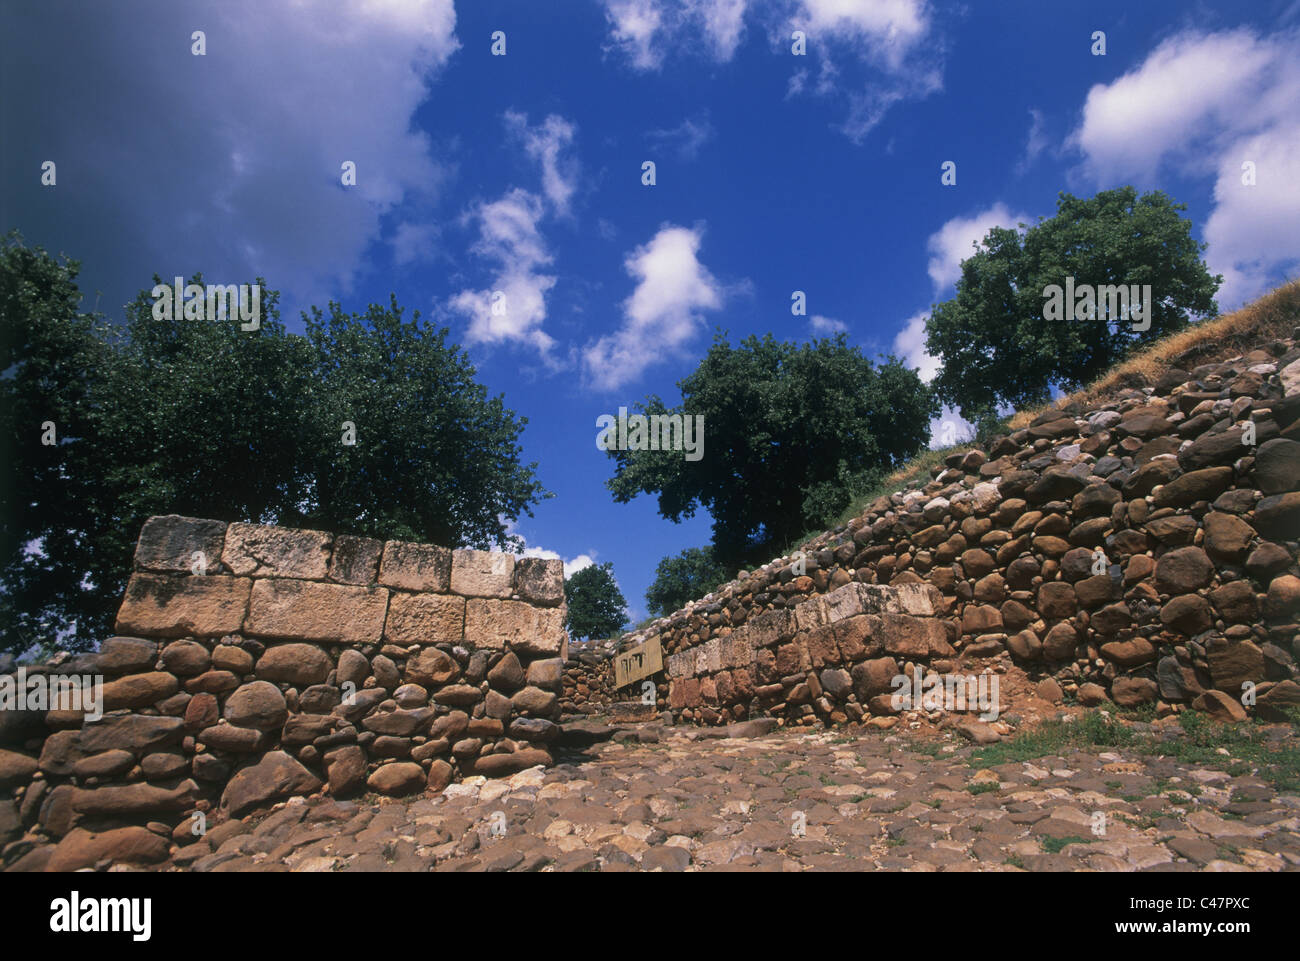 Photograph of the ancient mound of Dan - Stock Image